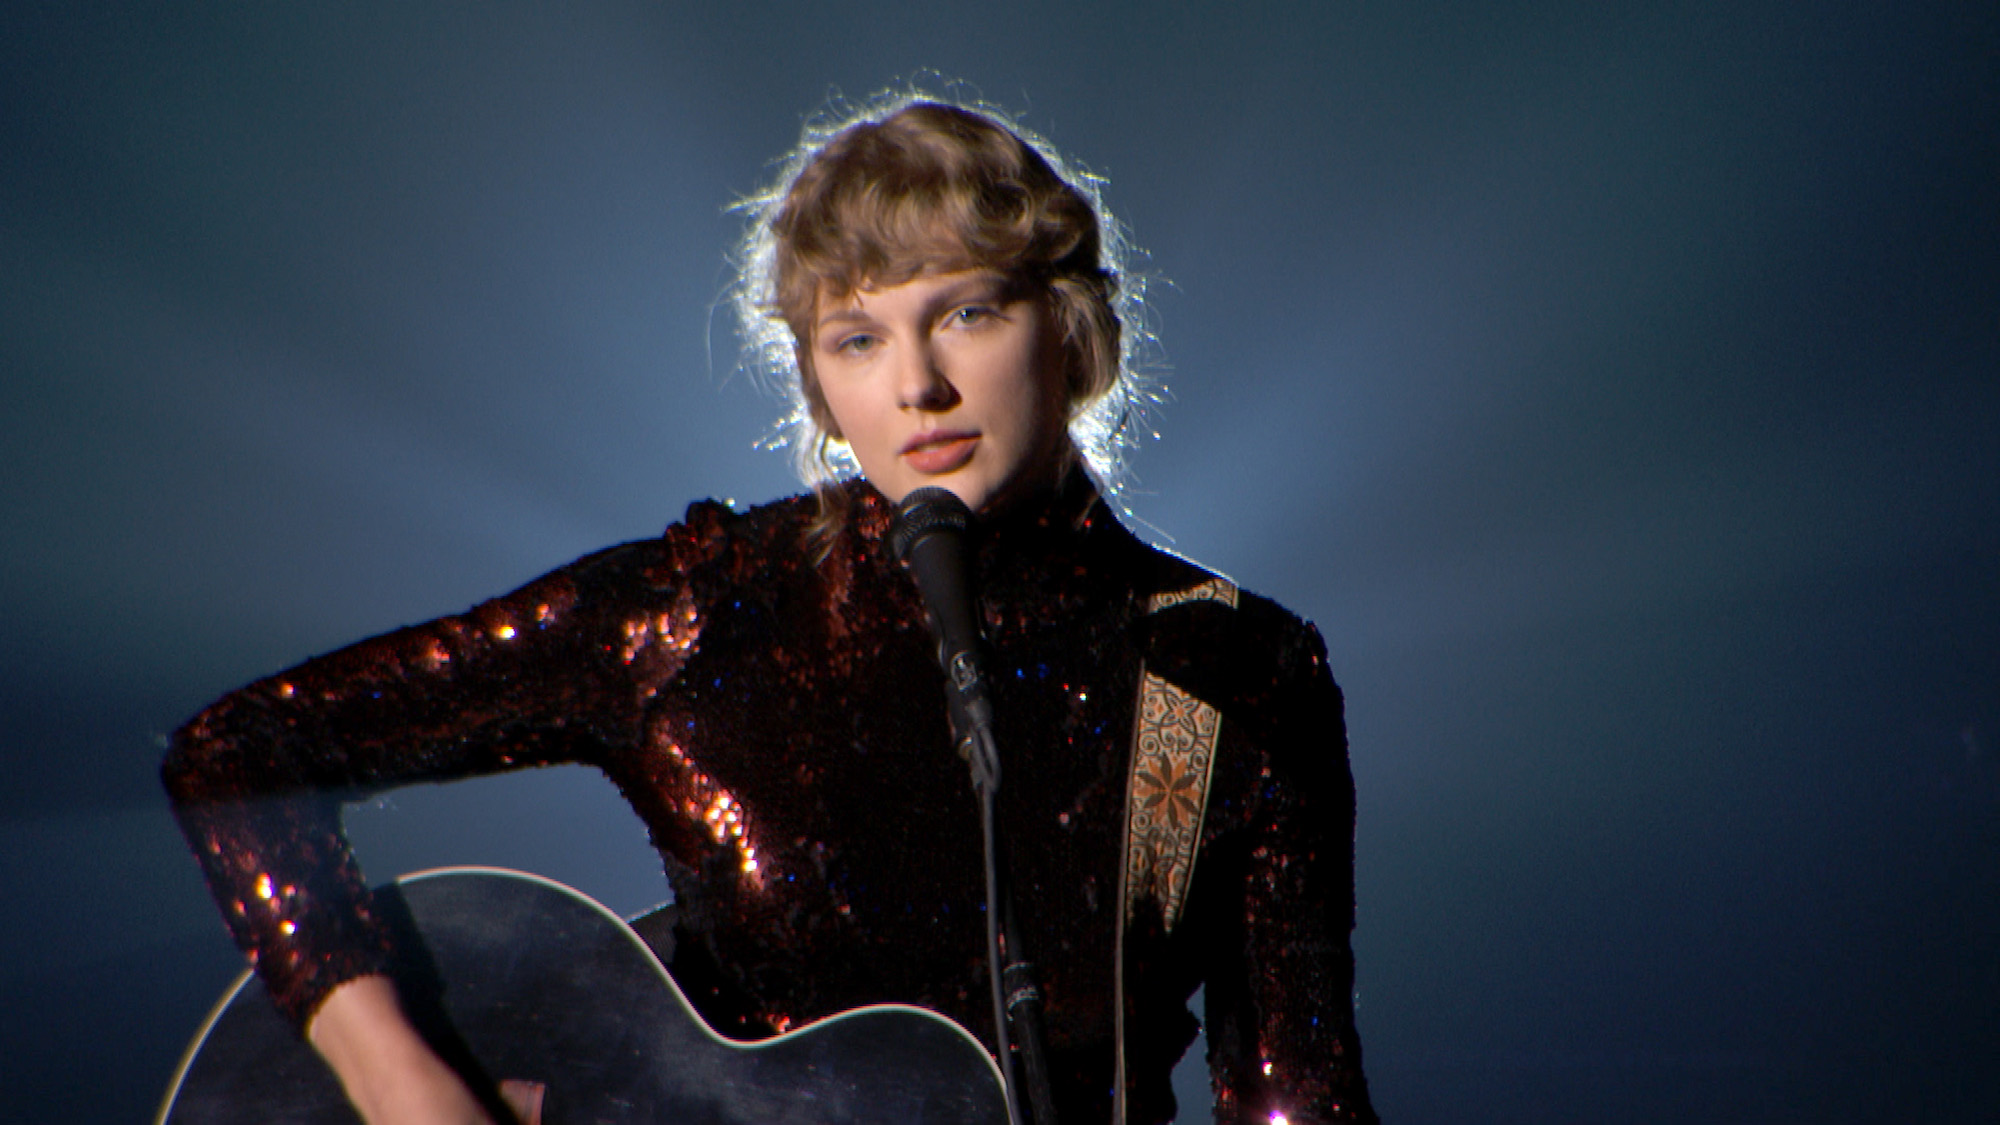 Taylor Swift performs onstage during the 55th Academy of Country Music Awards on Sept. 16, 2020